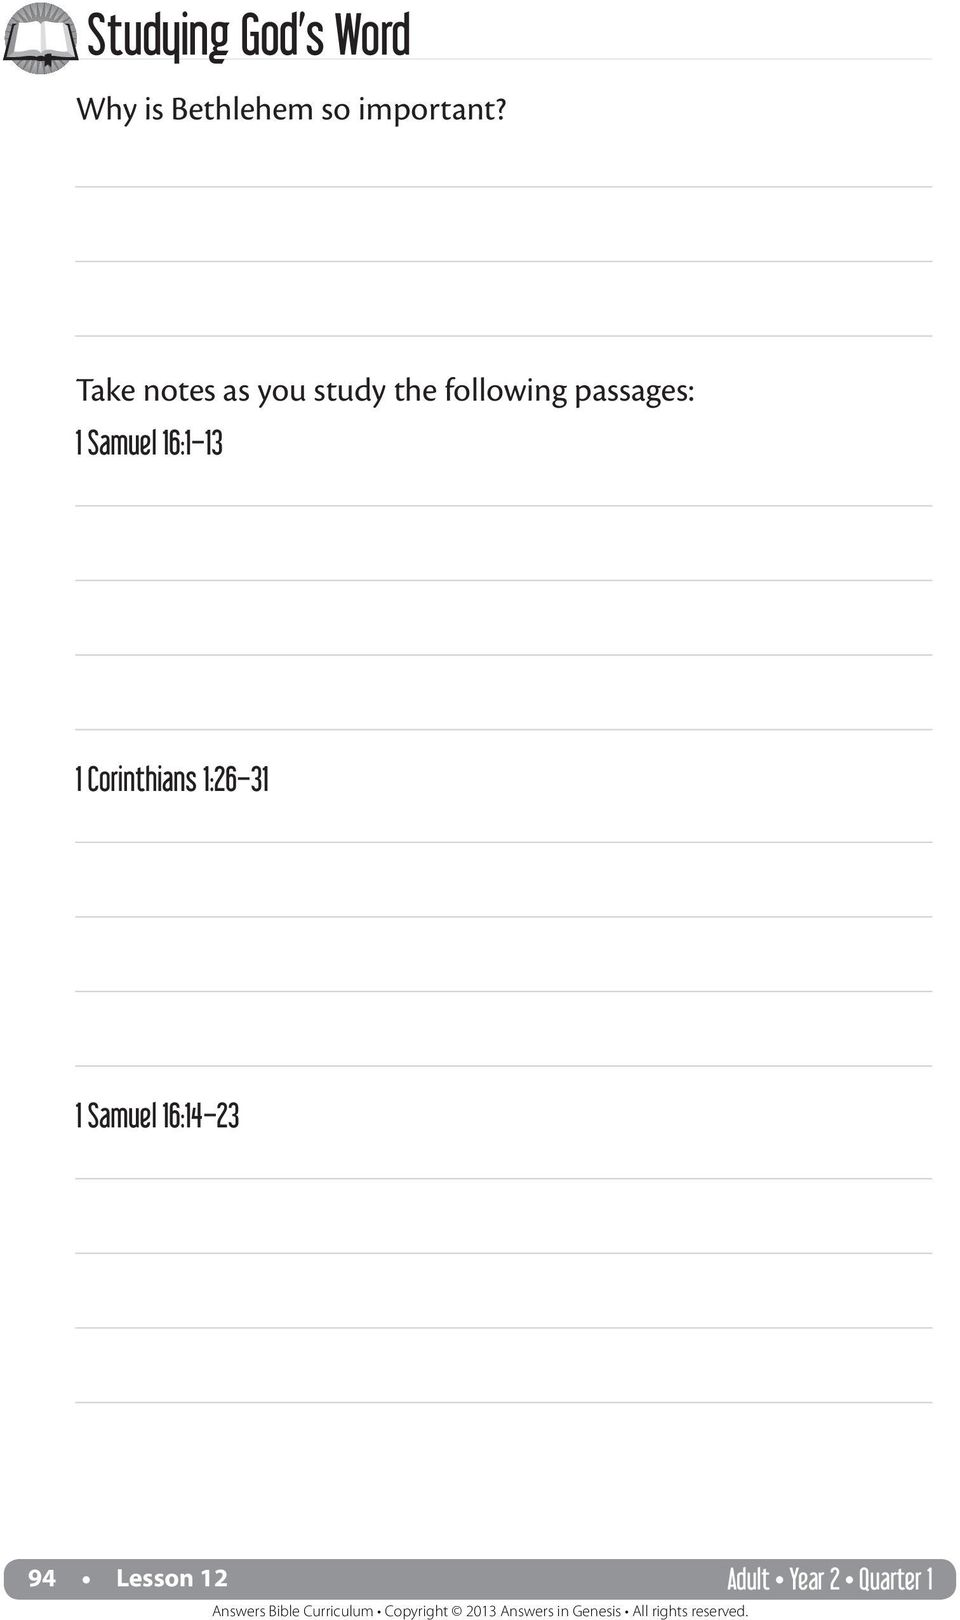 Take notes as you study the following passages: 1